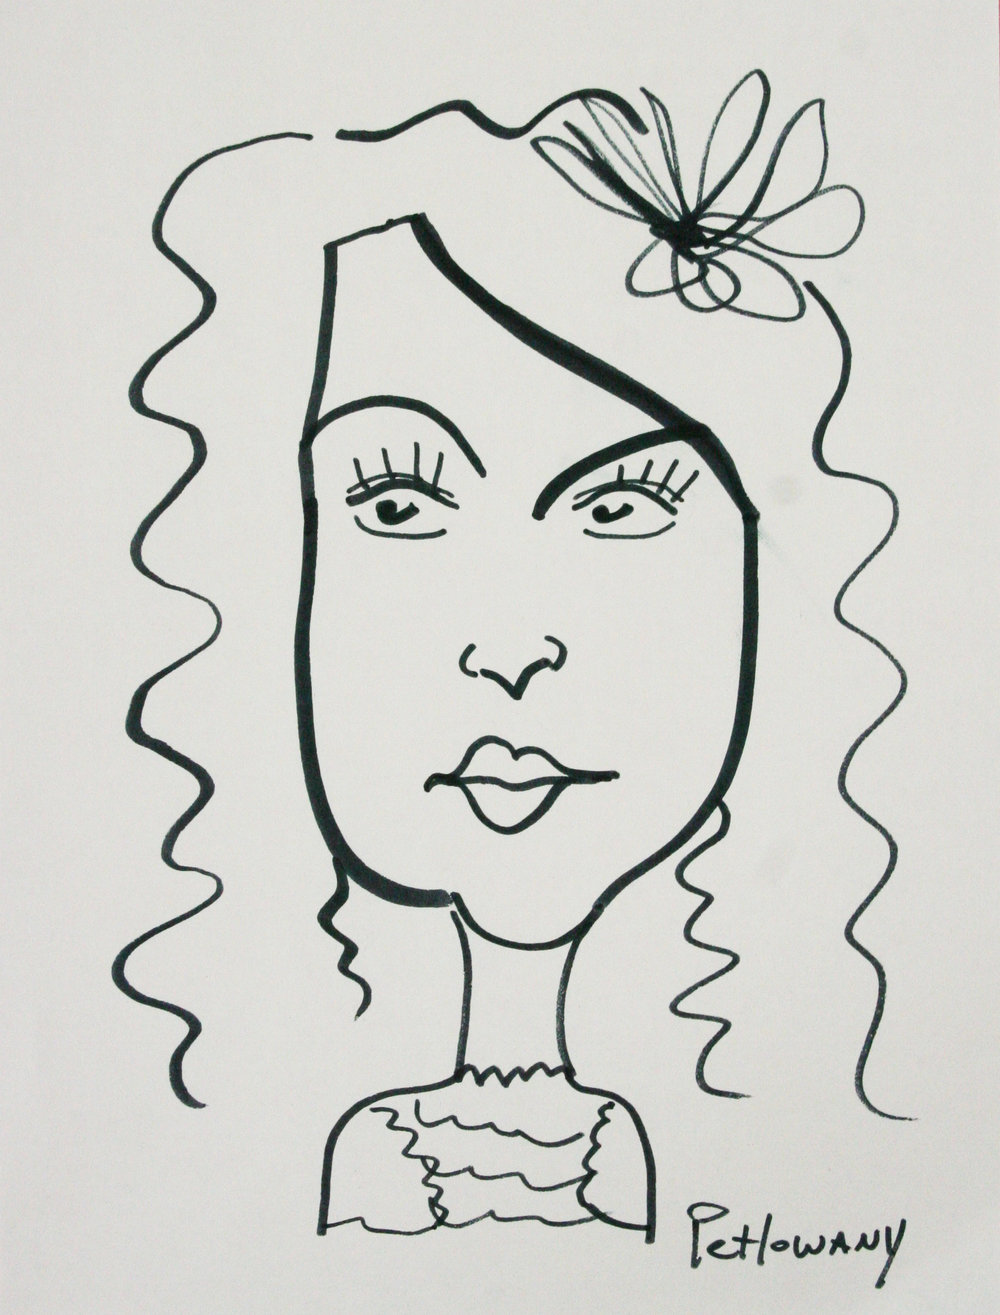 Paula Petlowany did this quick caricature drawing.